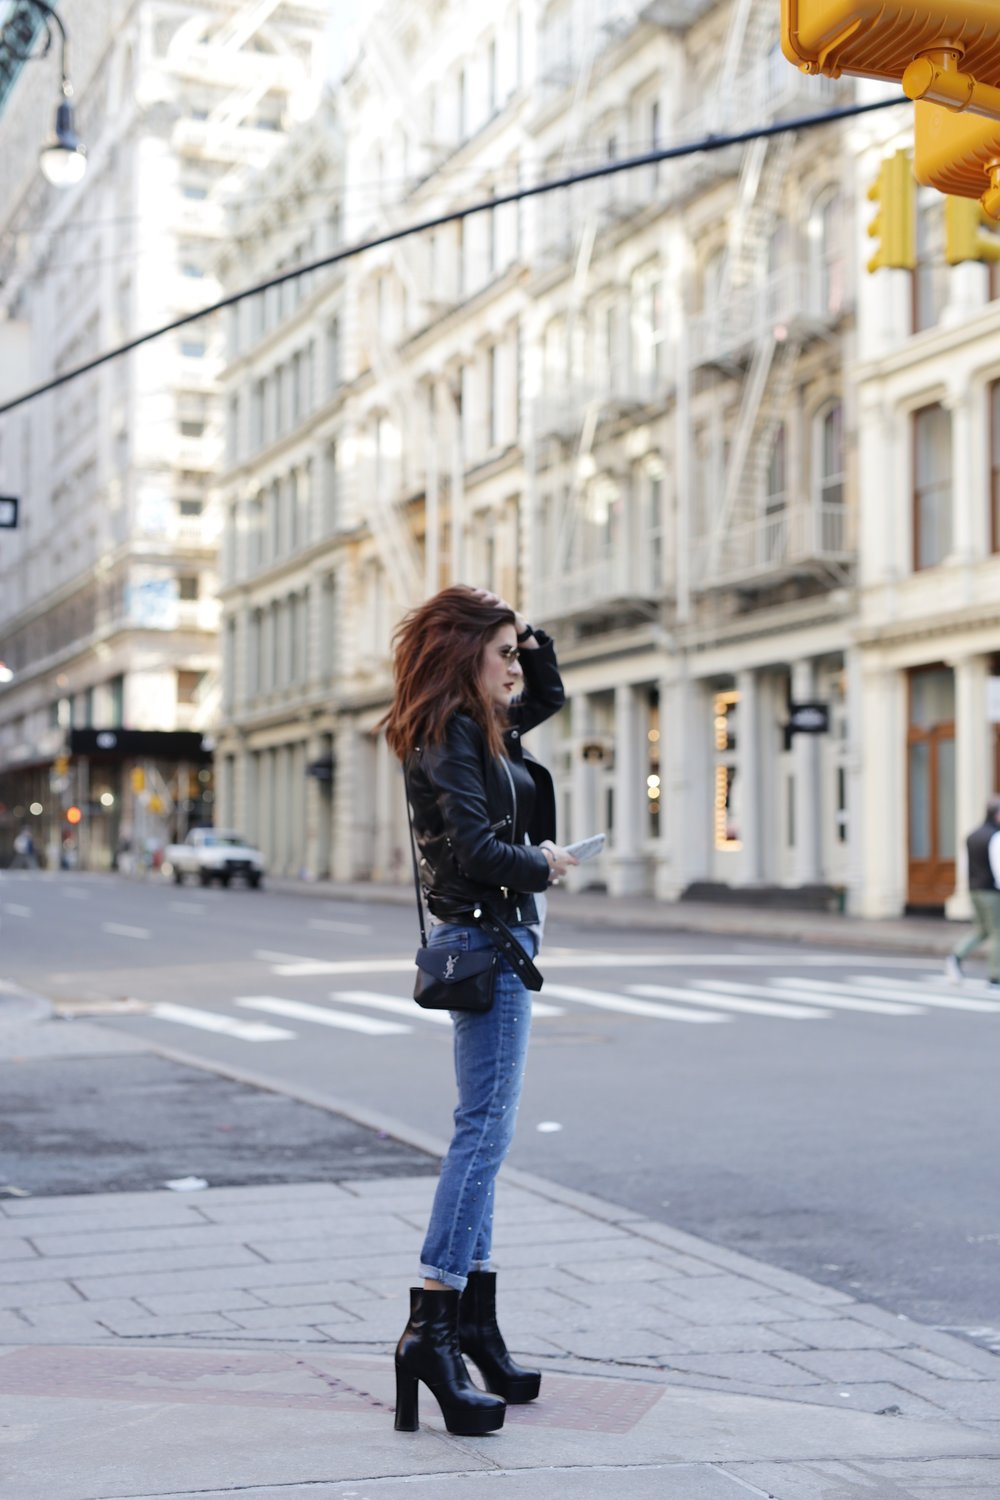 NYC street style - Saint Laurent platform boots, leather moto jacket from The Kooples, YSL cross body bag and Gap studded jeans_6962.JPG